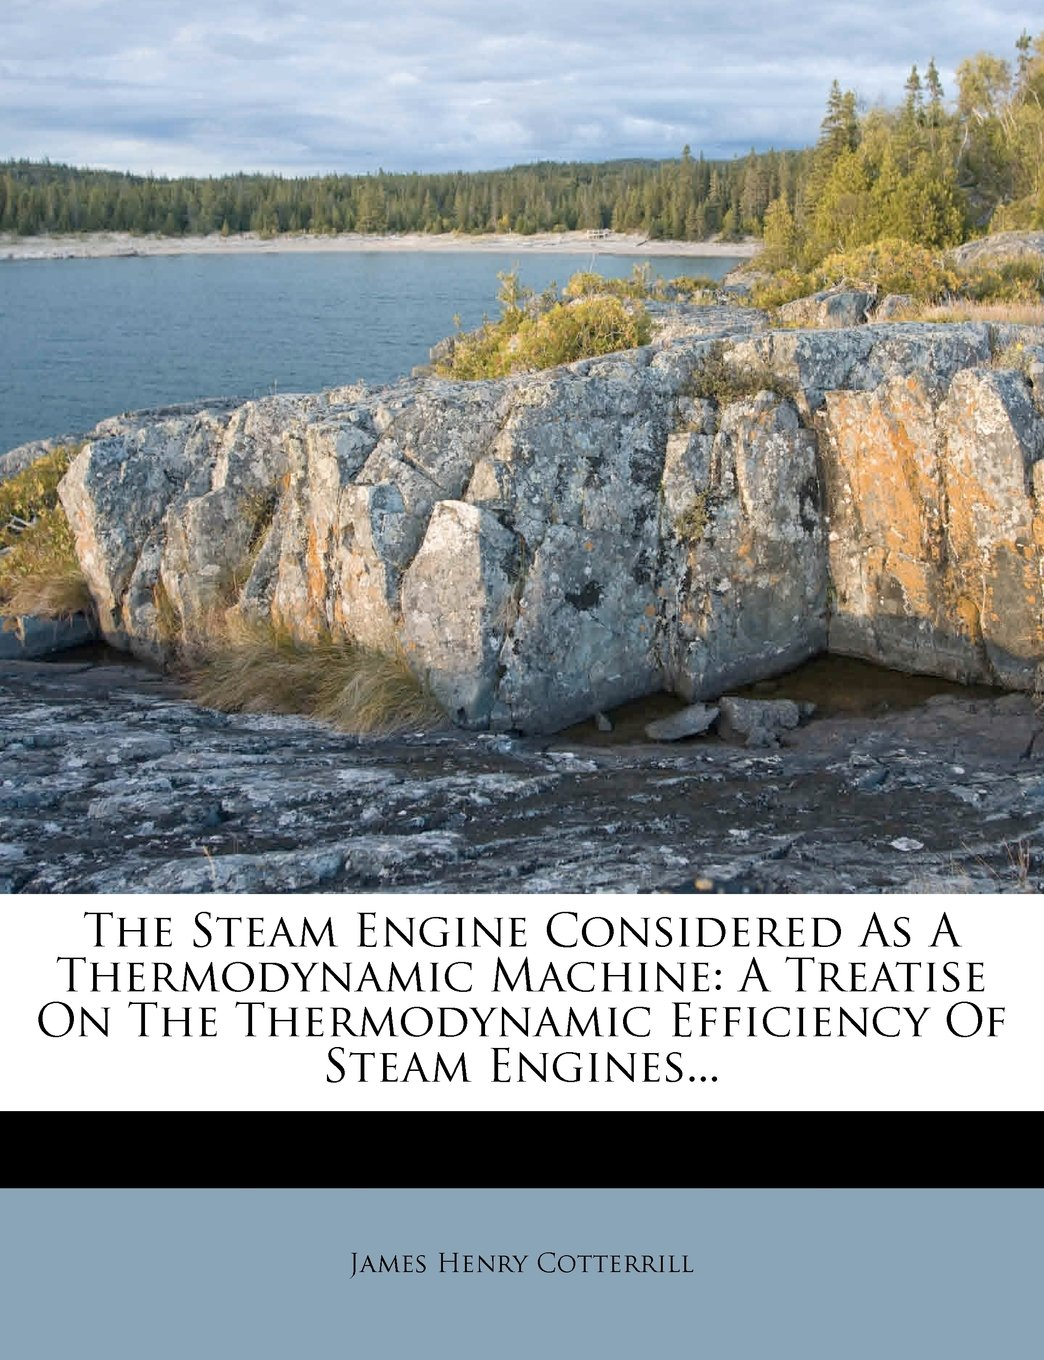 Download The Steam Engine Considered As A Thermodynamic Machine: A Treatise On The Thermodynamic Efficiency Of Steam Engines... ebook